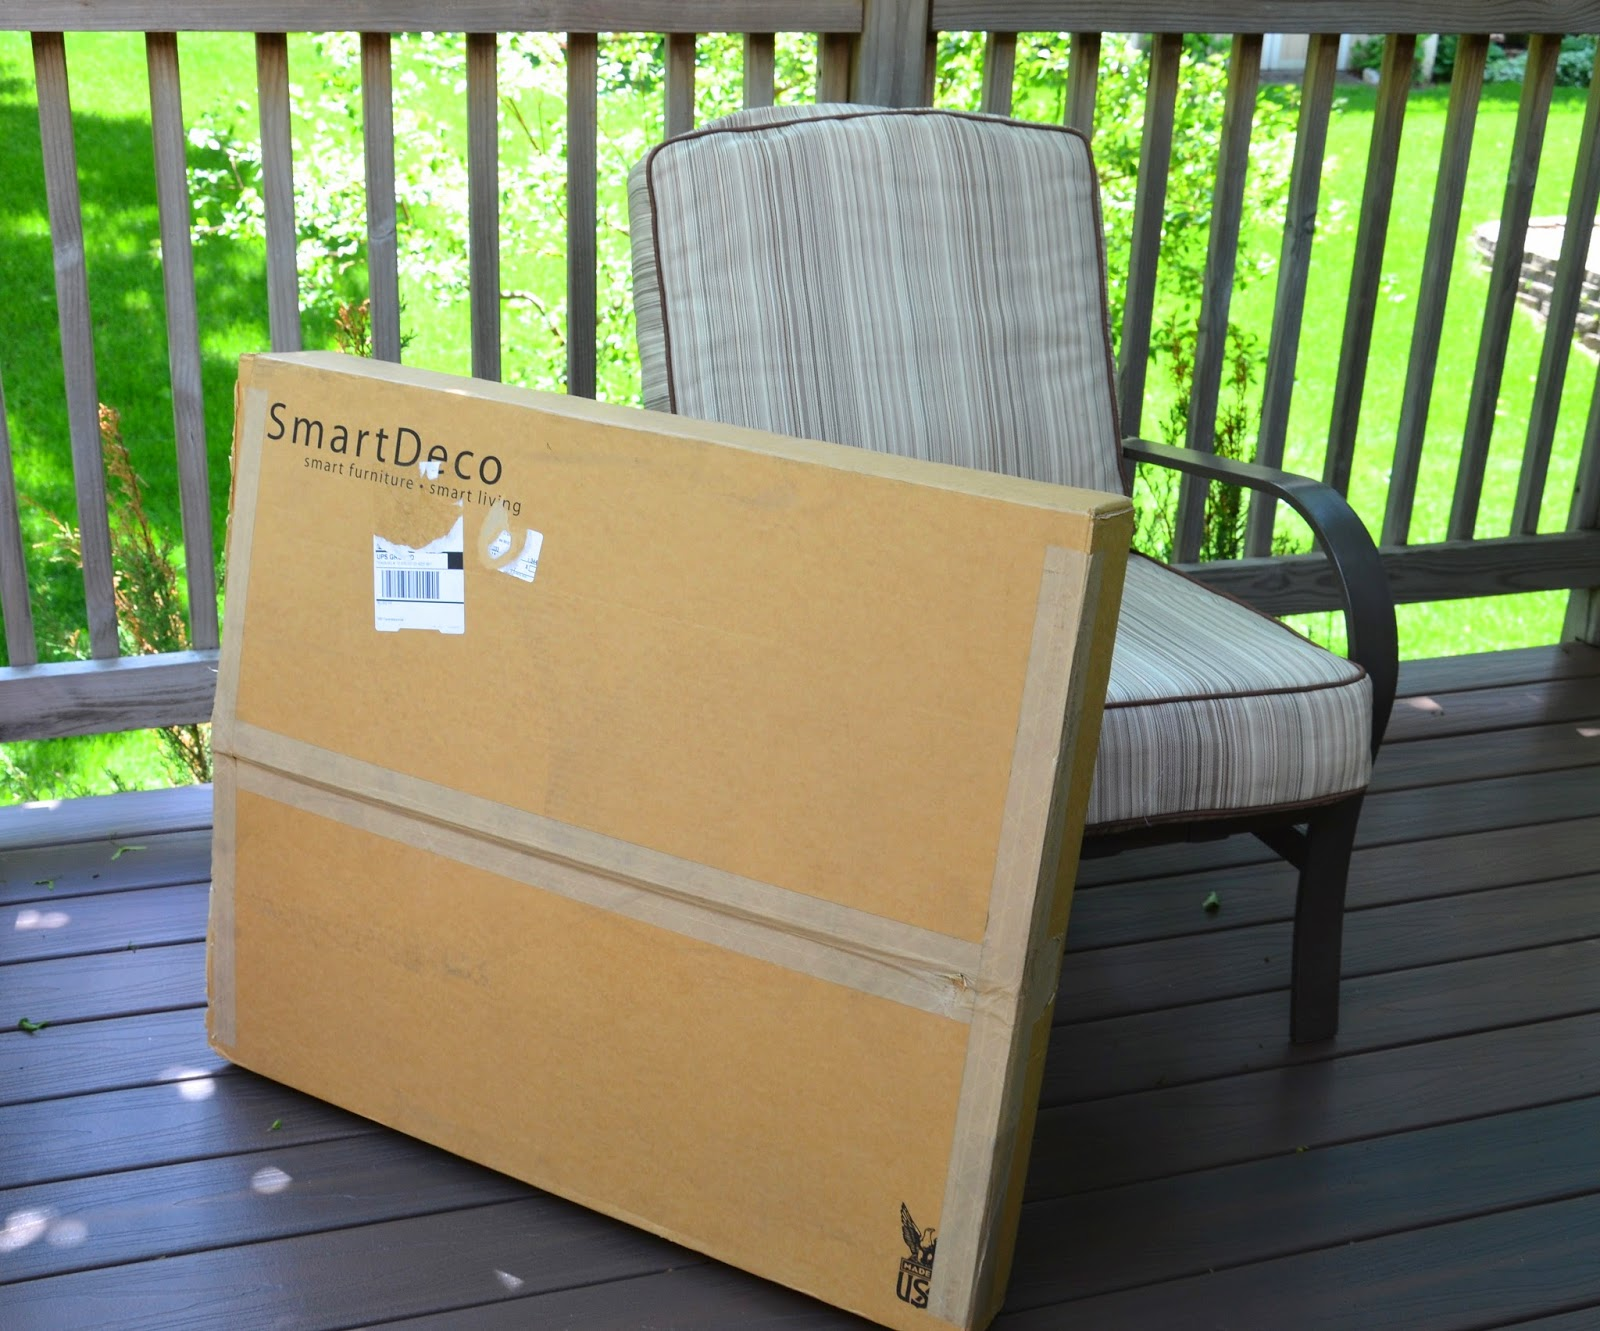 smart deco furniture. So Out Came The Box - And It\u0027s A Good Size, Working On It Deck Was Just Lovely. Smart Deco Furniture